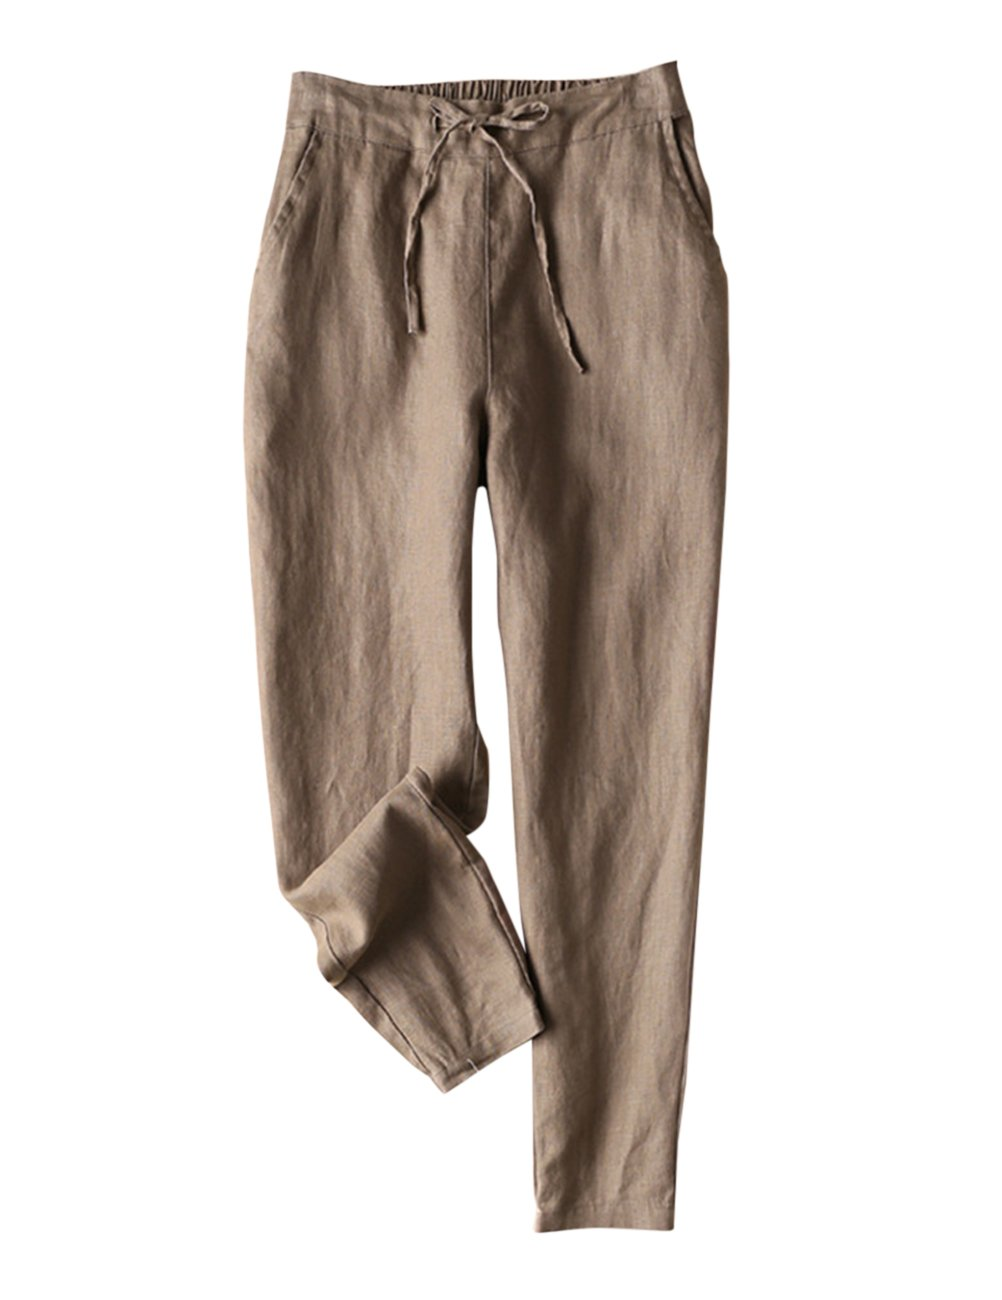 IXIMO Women's Tapered Pants 100% Linen Drawstring Back Elastic Waist Pants Trousers with Pockets Dark Khaki 12